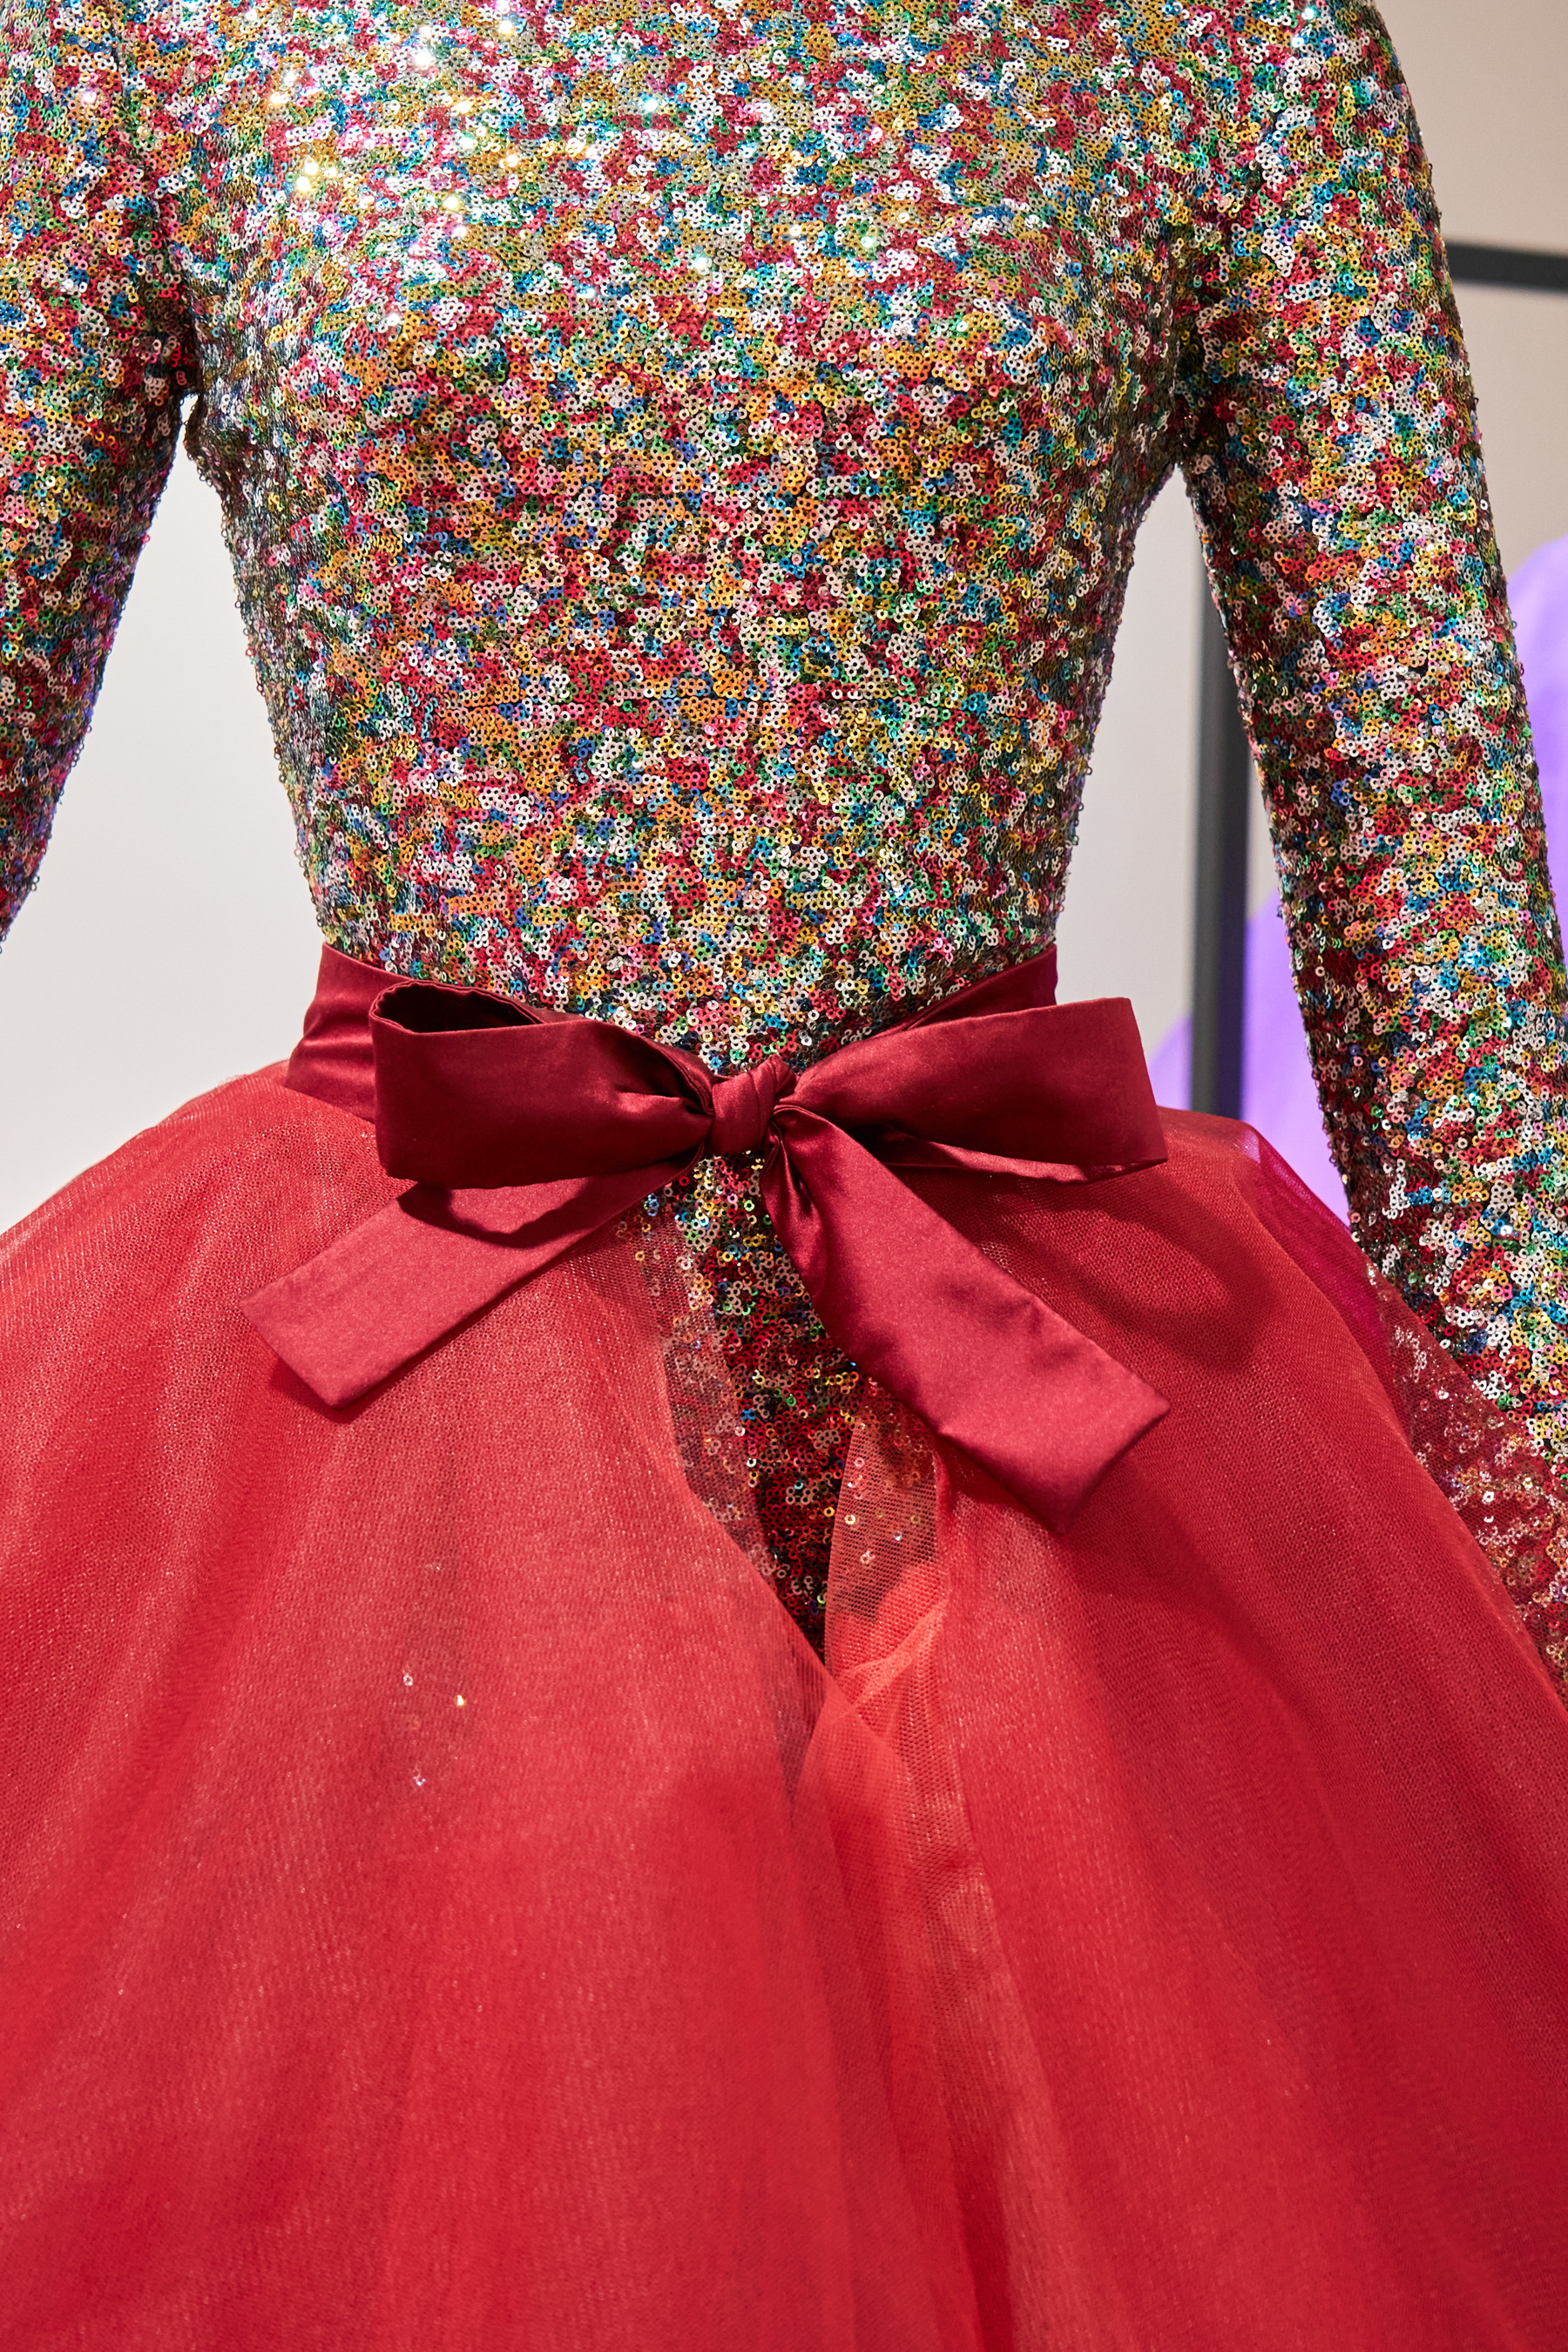 Alexis Mabille Fall 2021 Couture Details Fashion Show